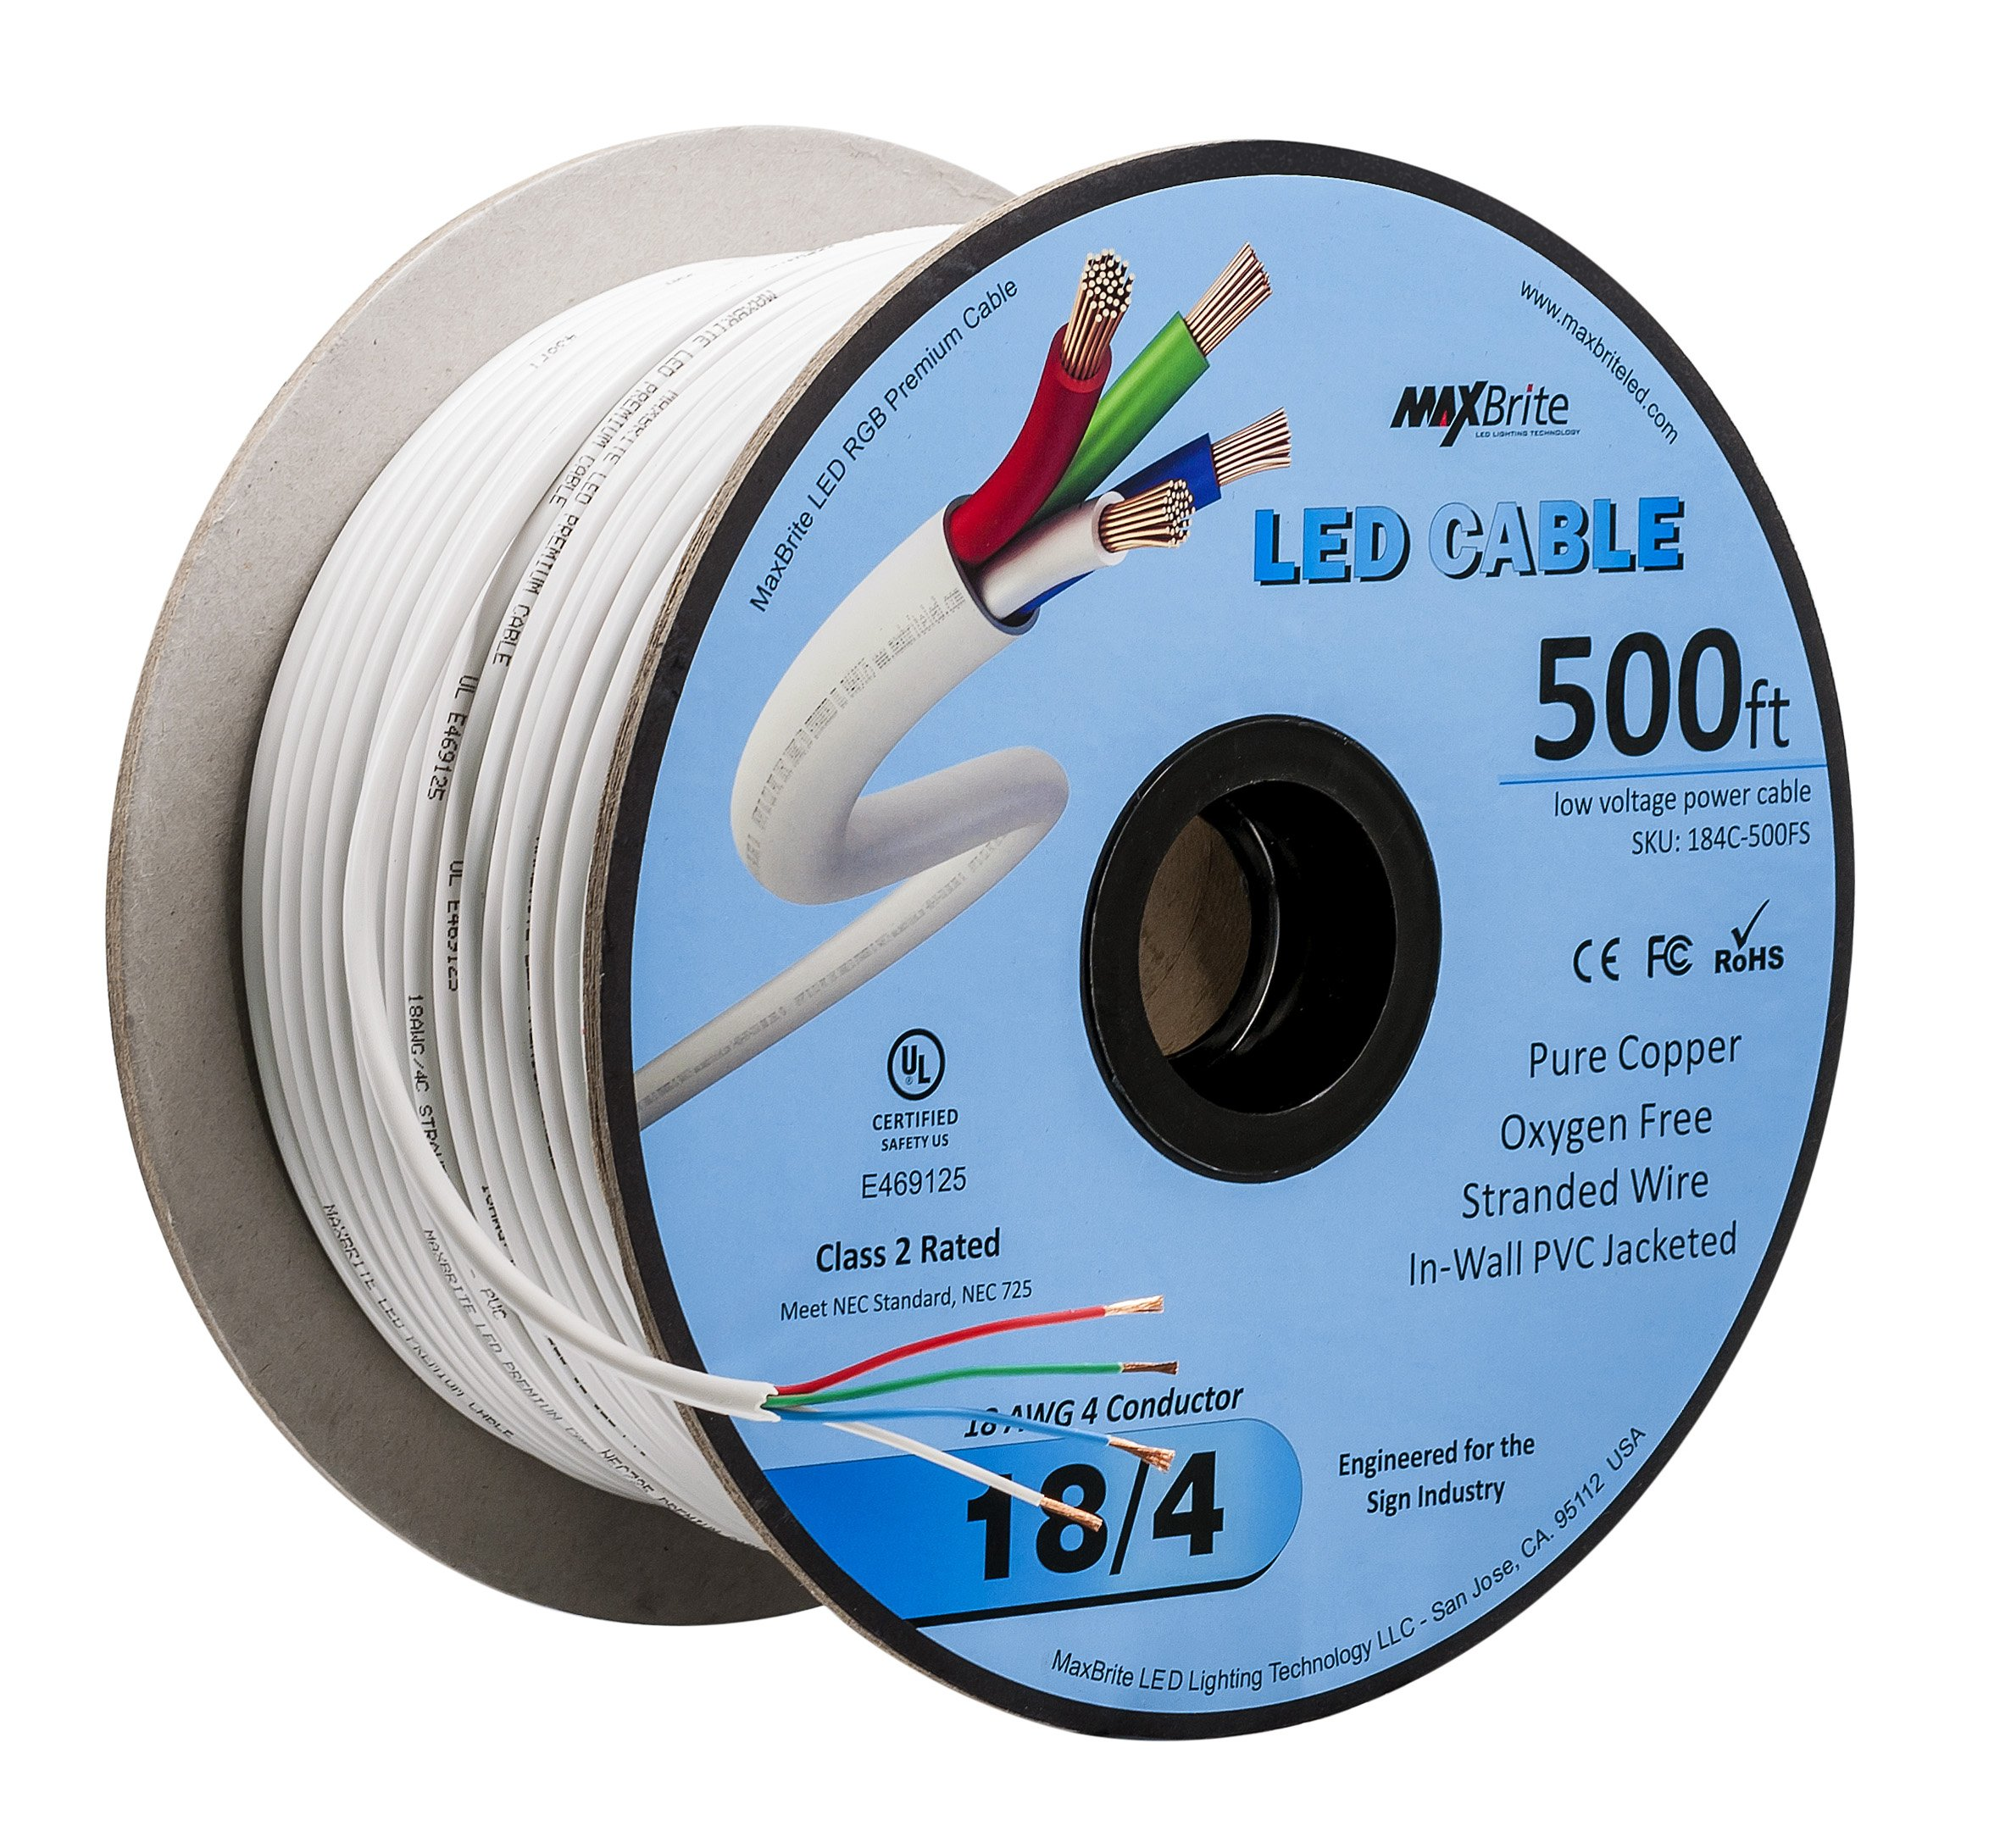 LED Cable 4 Conductor Jacketed In-Wall Speaker Wire UL/cUL Class 2 (500ft. Spool)